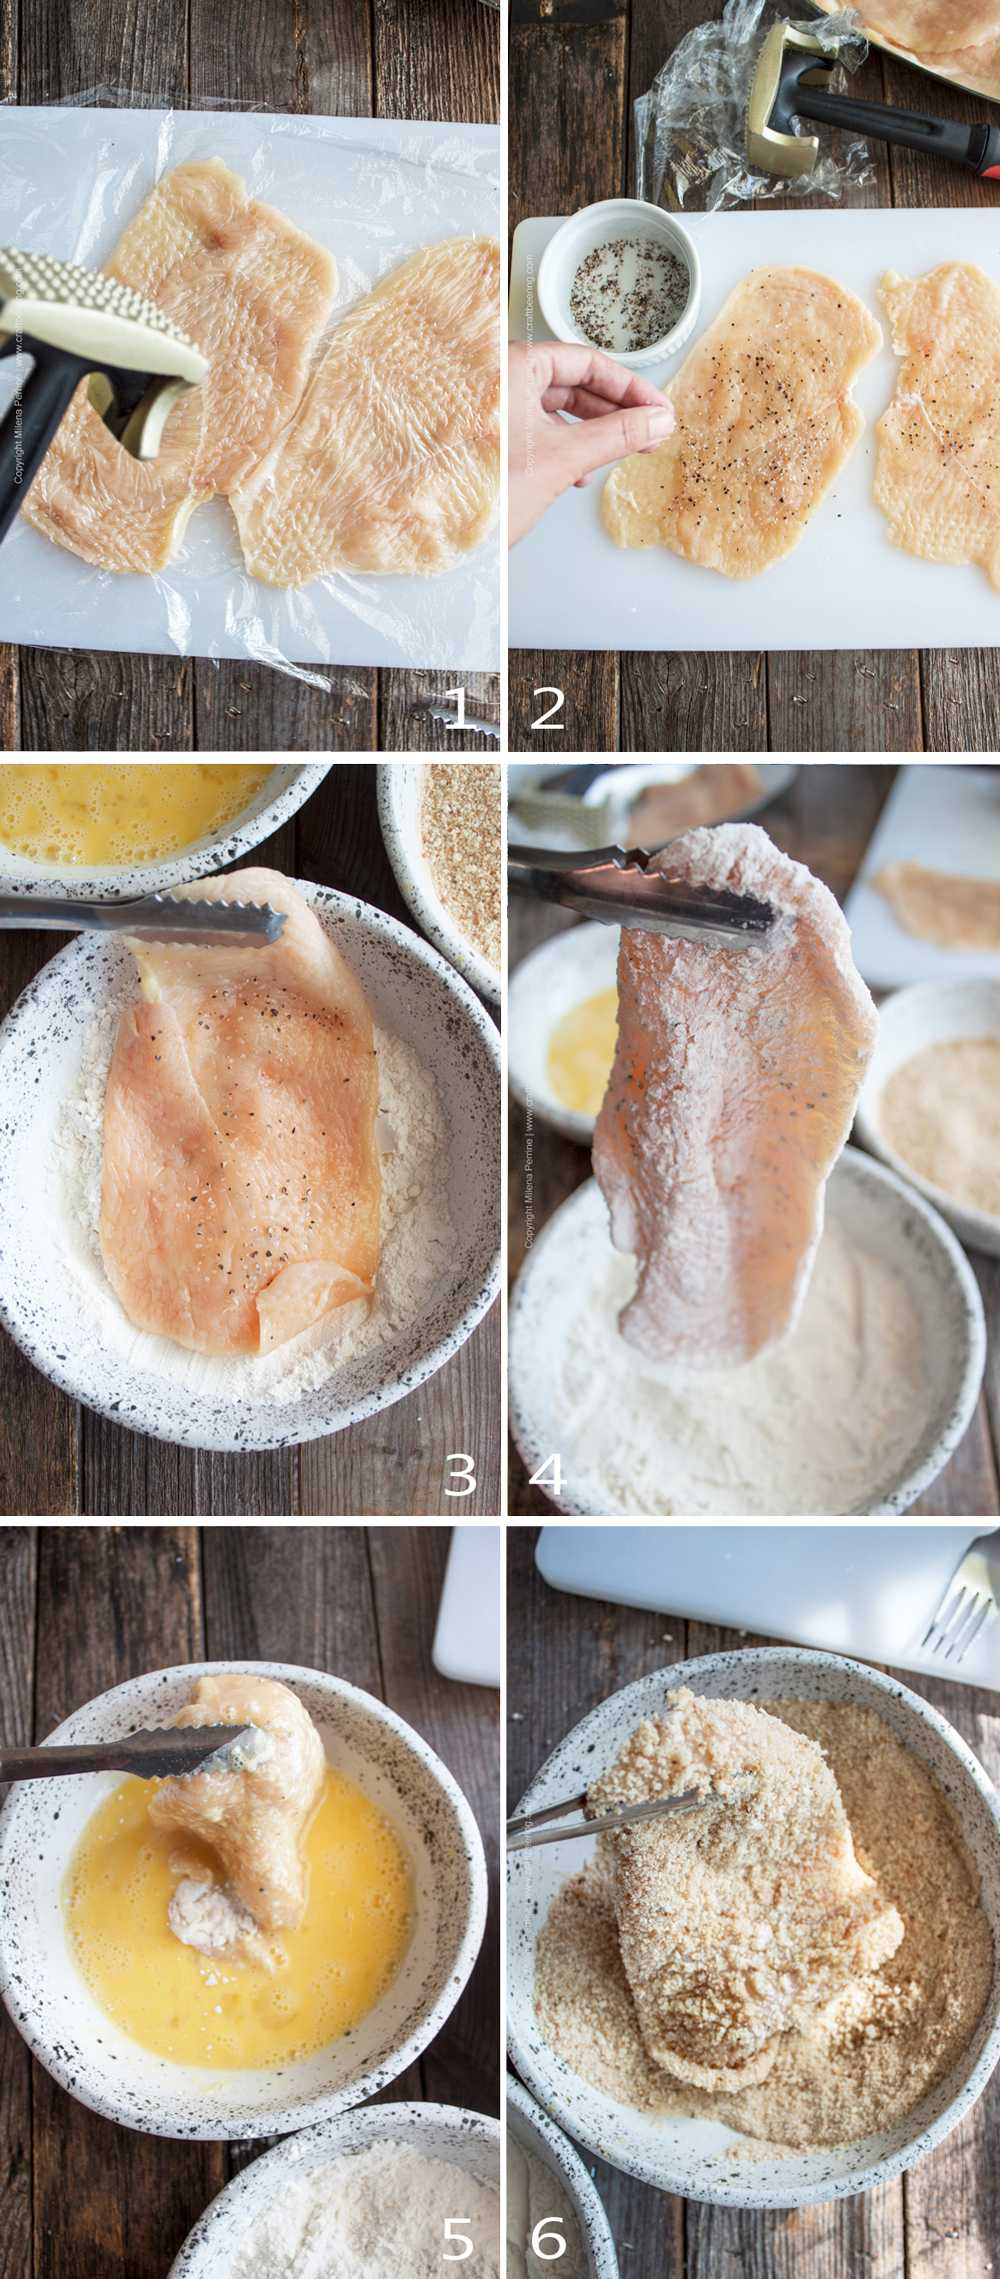 How to make schnitzel, step by step image grid